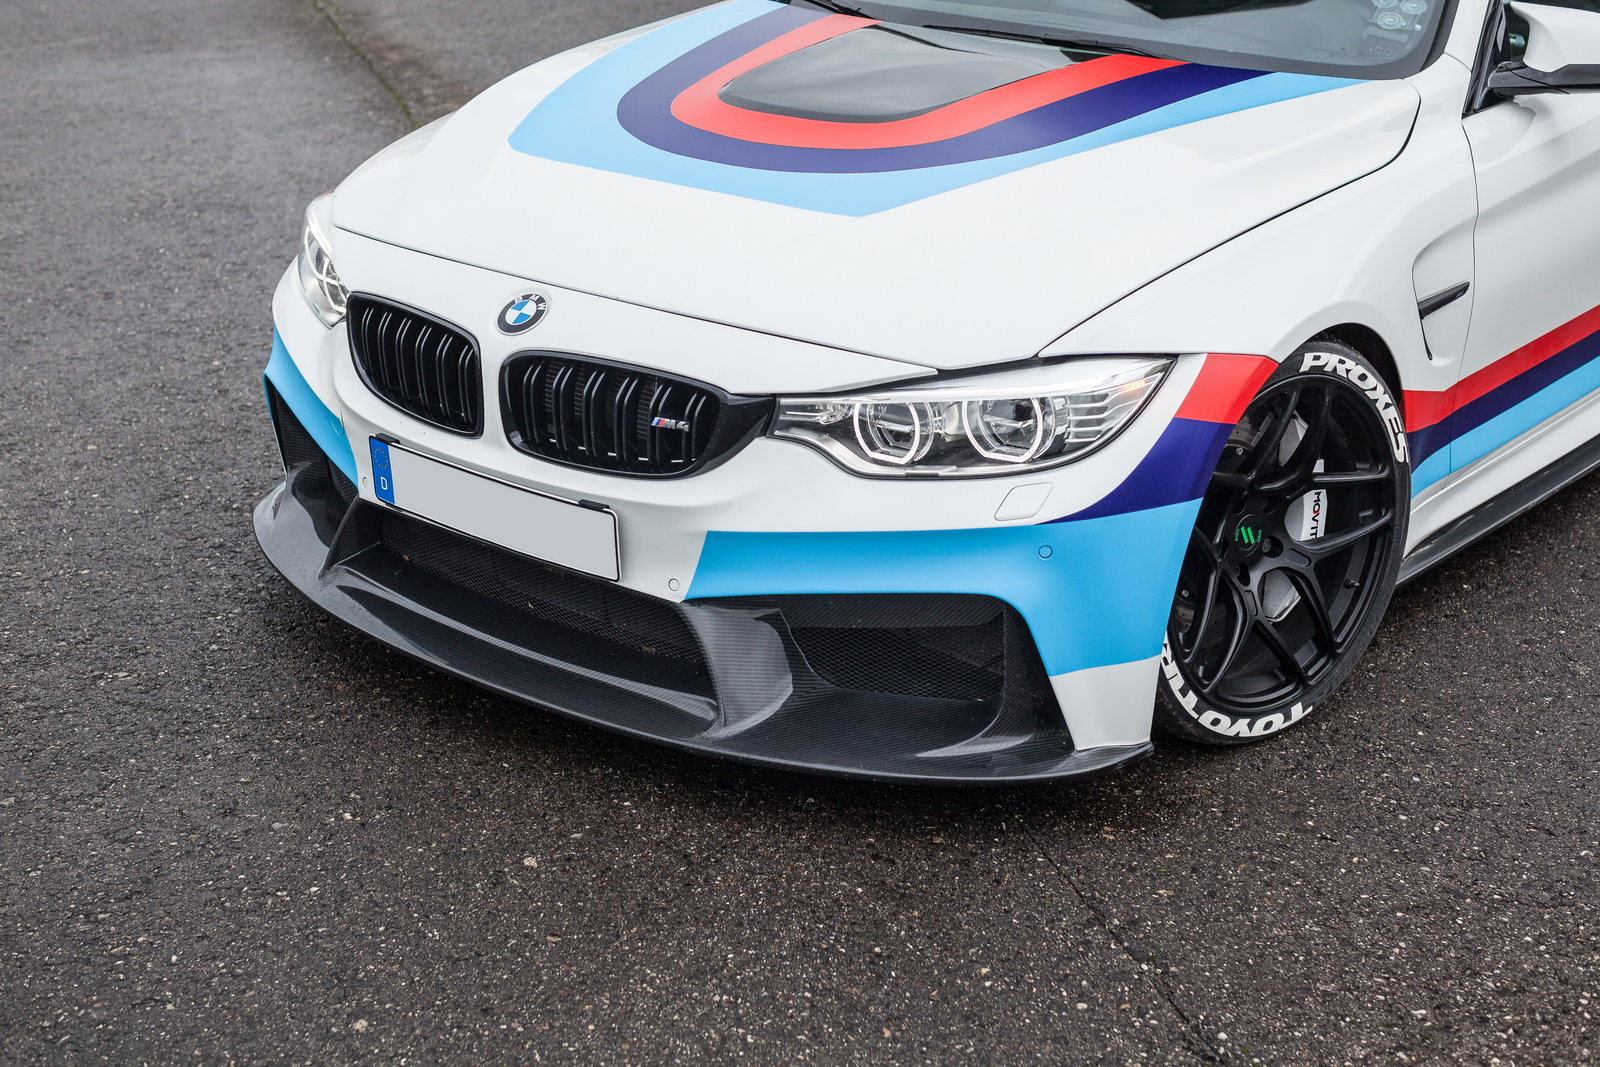 bmw-m4r-by-carbonfiber-dynamic-6